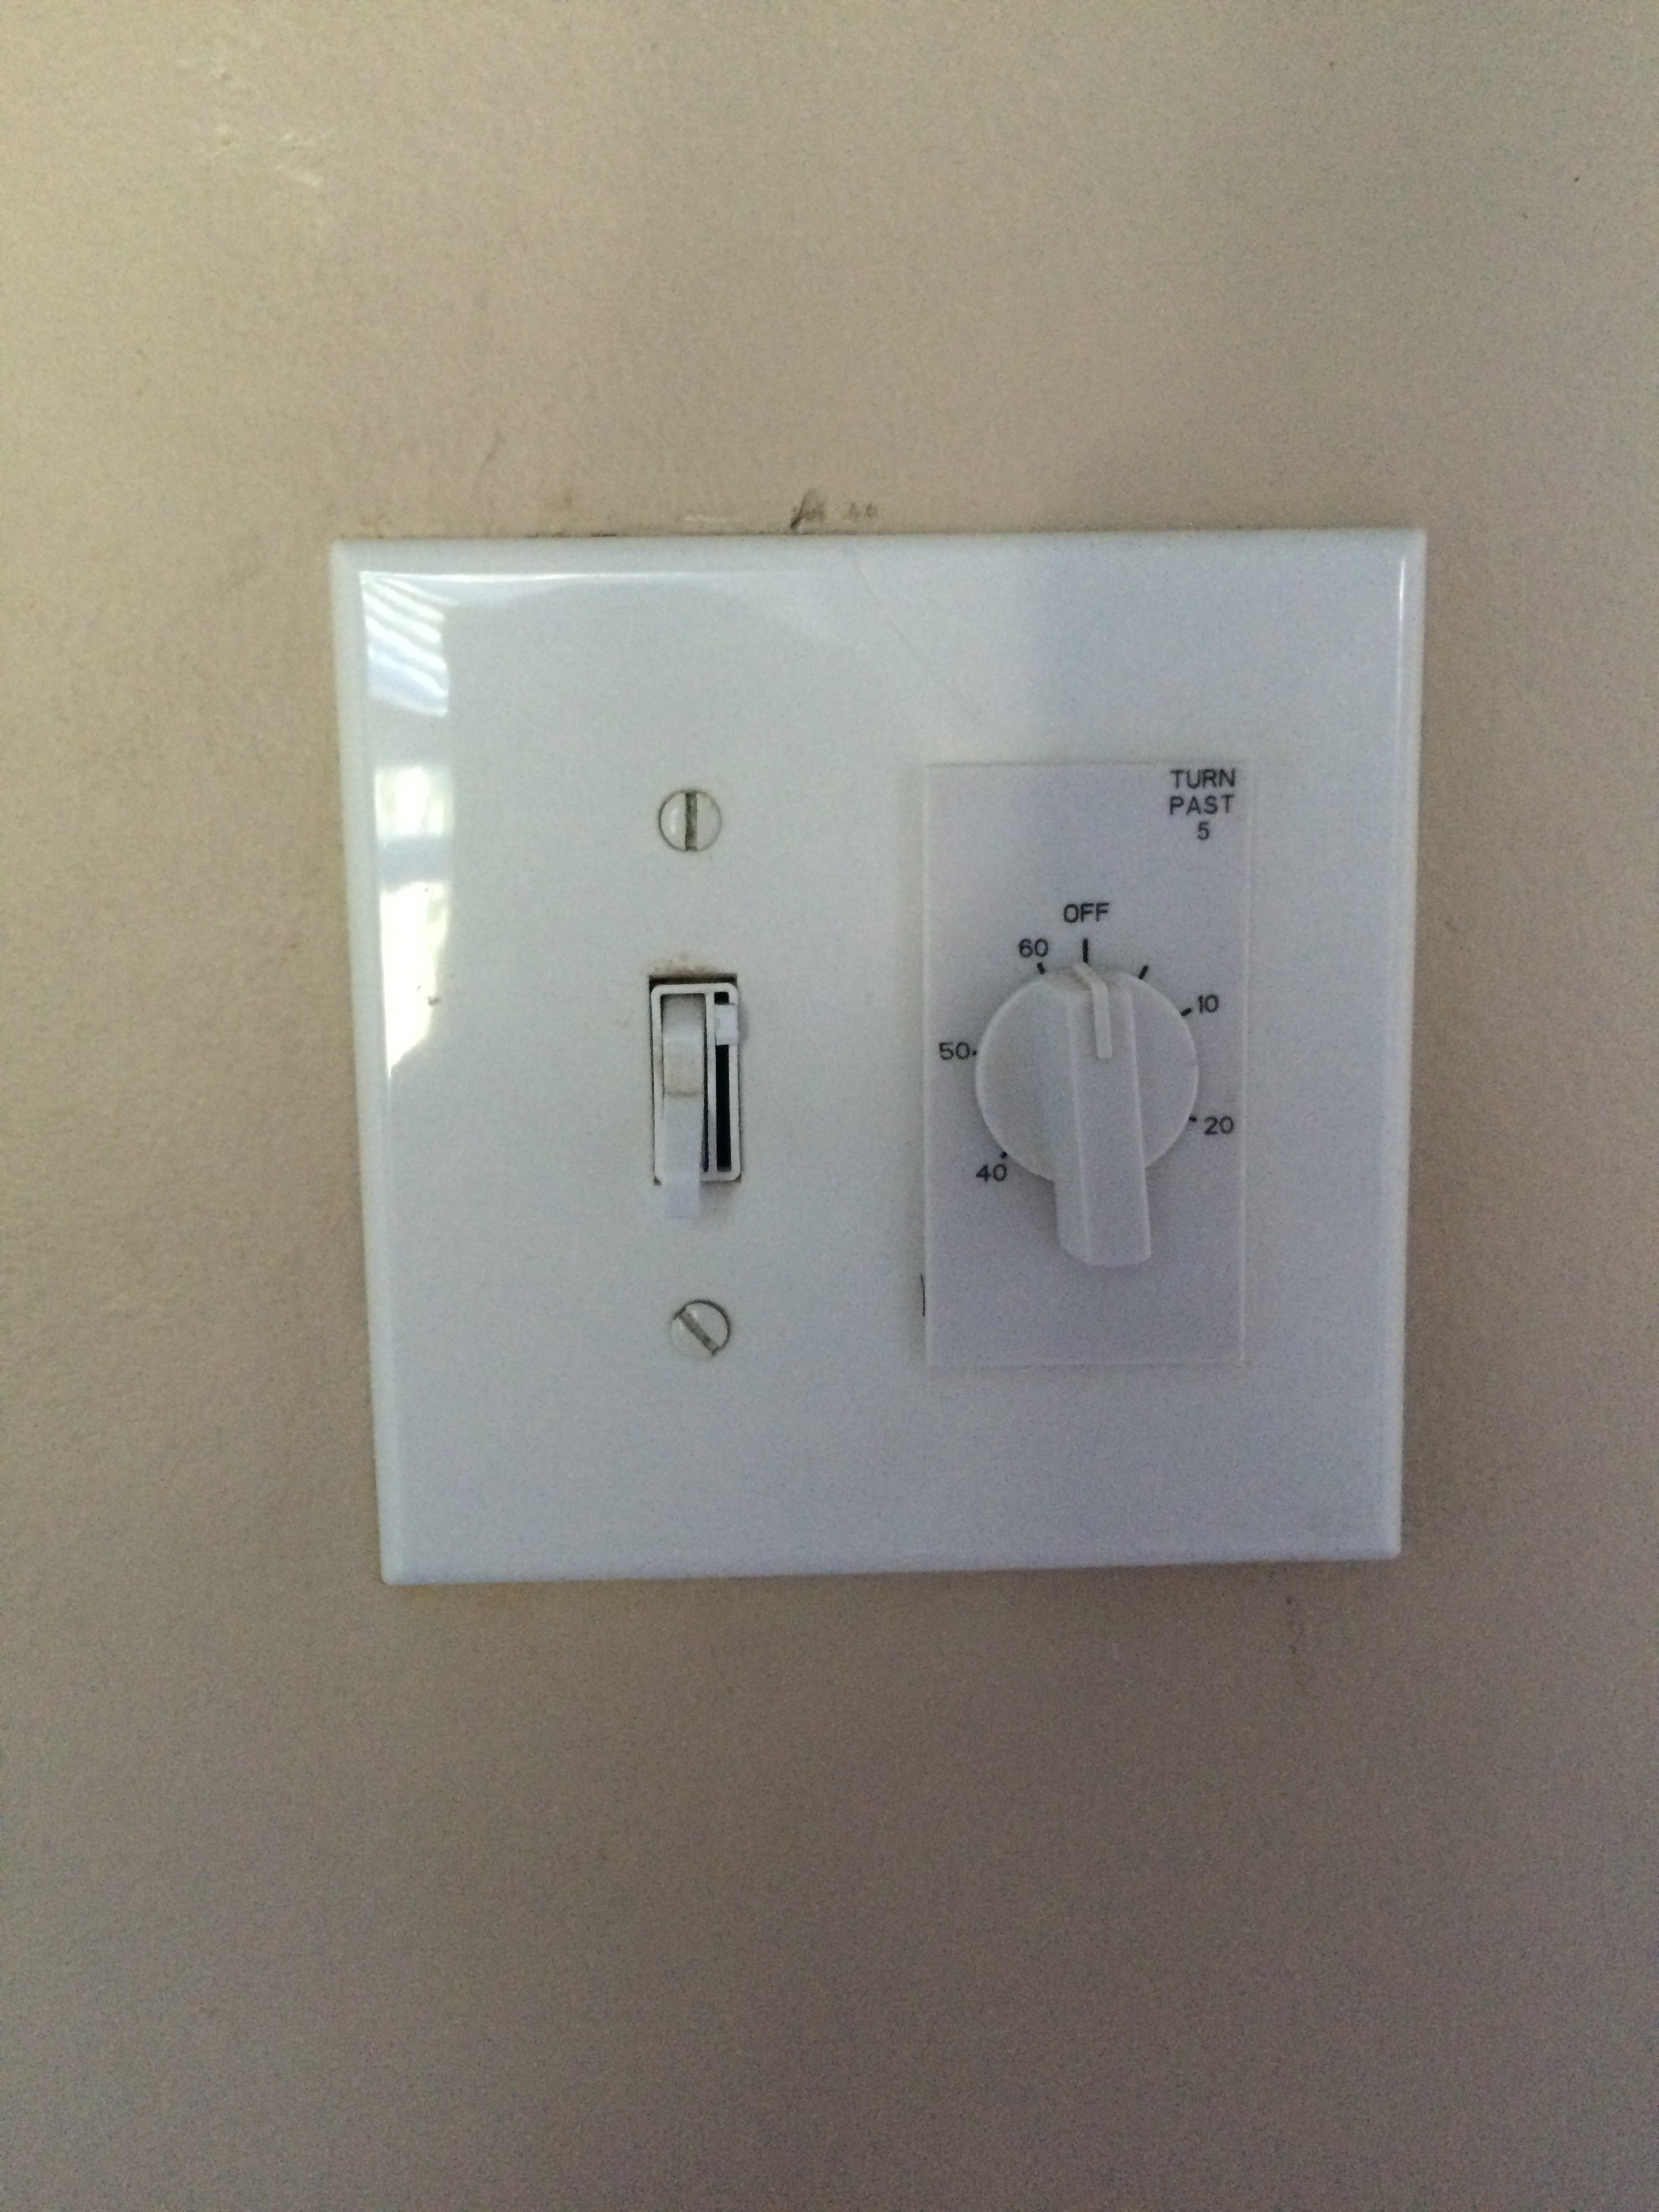 Wiring Leviton Timer To Bath Fan And Switch To Leviton Online